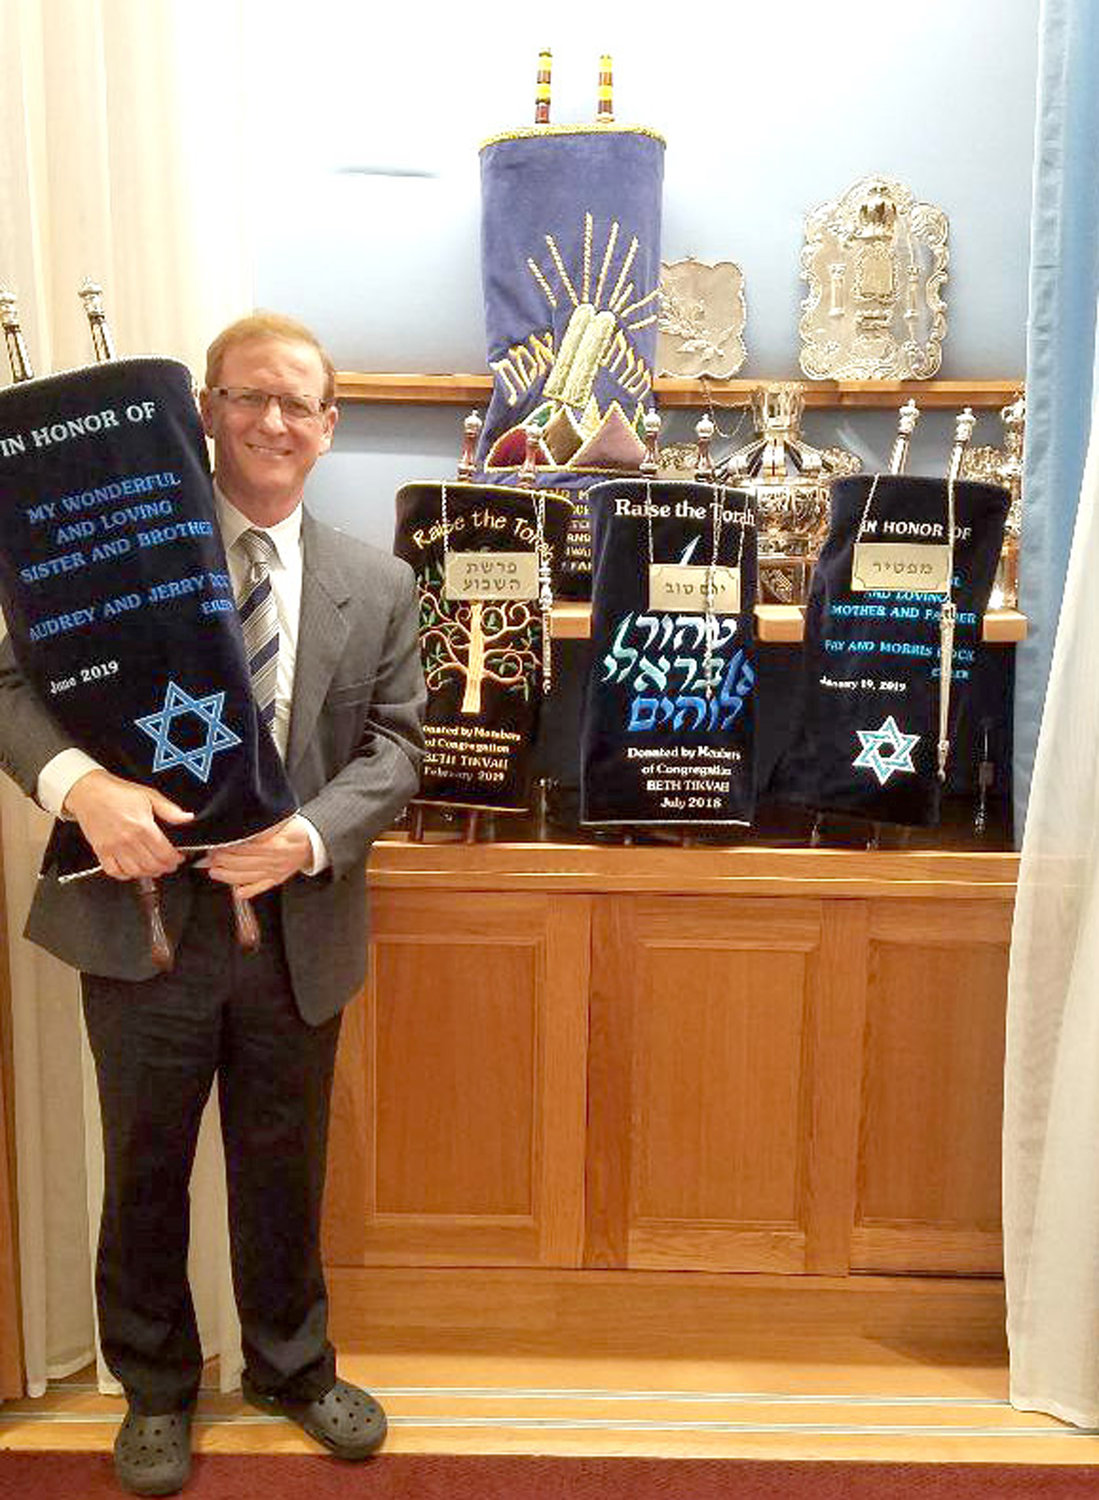 Rabbi Moshe Weisblum and his congregation celebrated the dedication of Congregation Beth Tikvah's fourth new Torah on June 9.